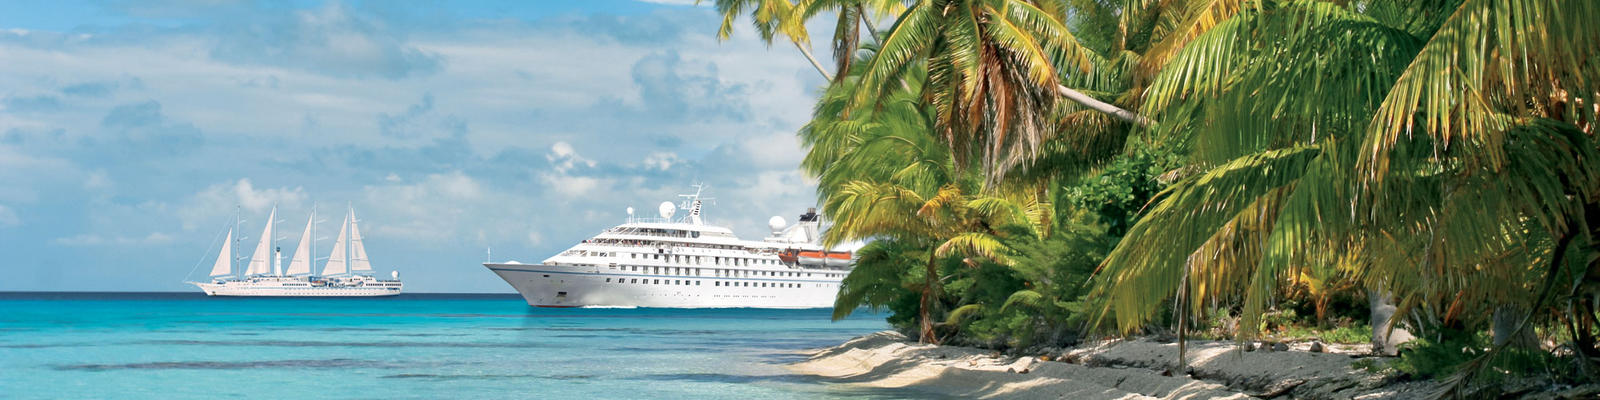 7 Signs You Should Book a Cruise Right Now (Photo: Windstar Cruises)